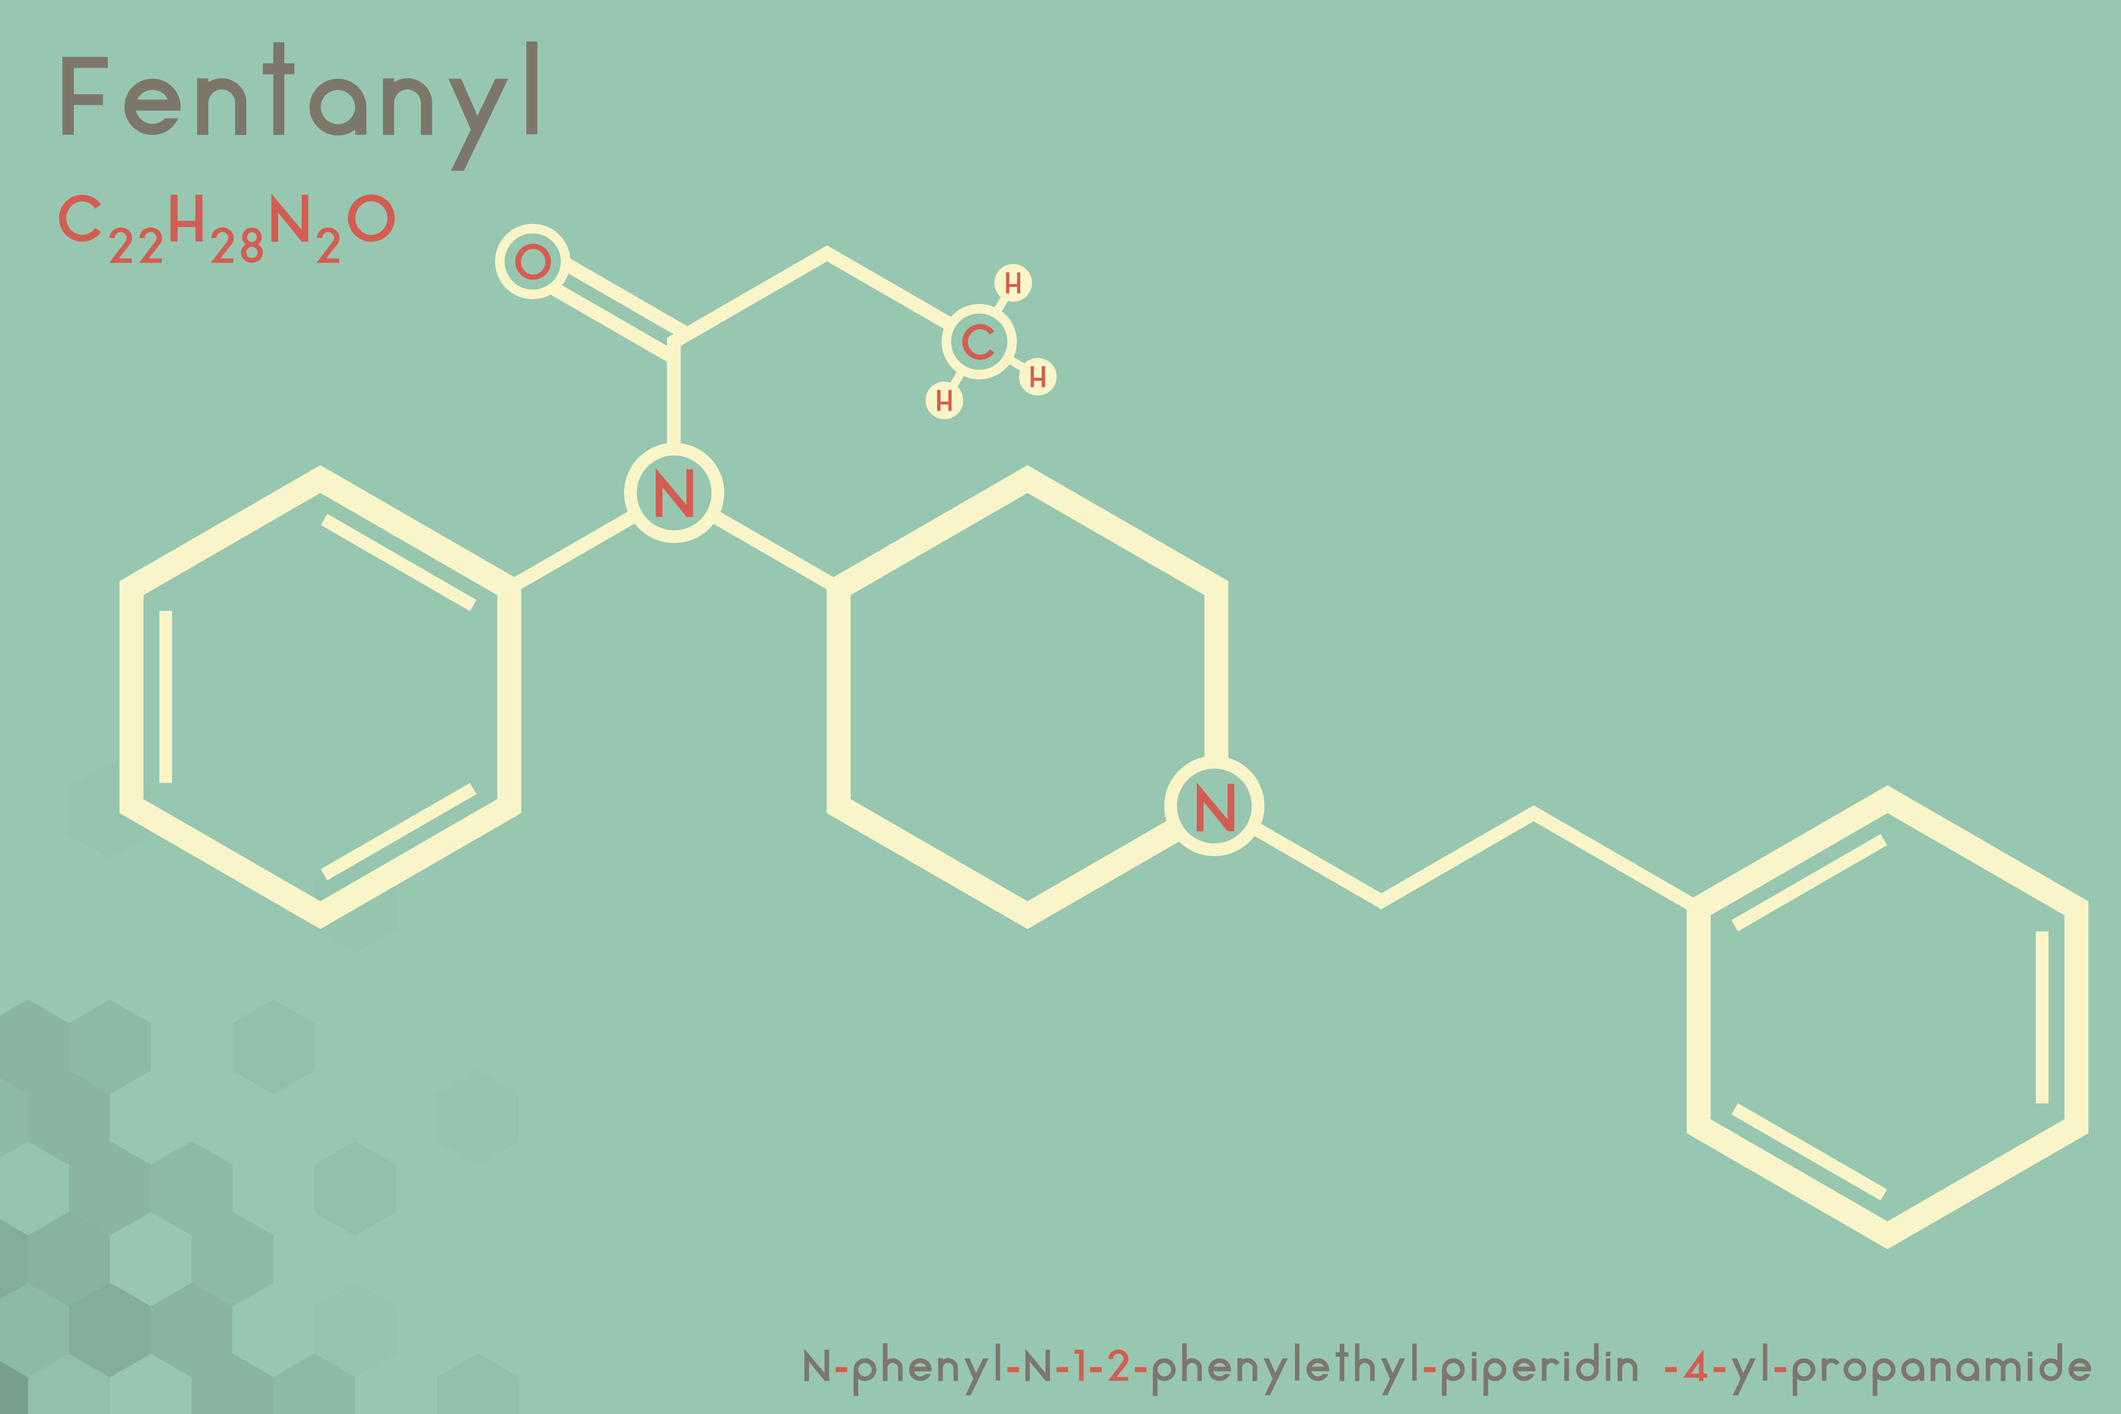 Infographic of the molecule of Fentanyl